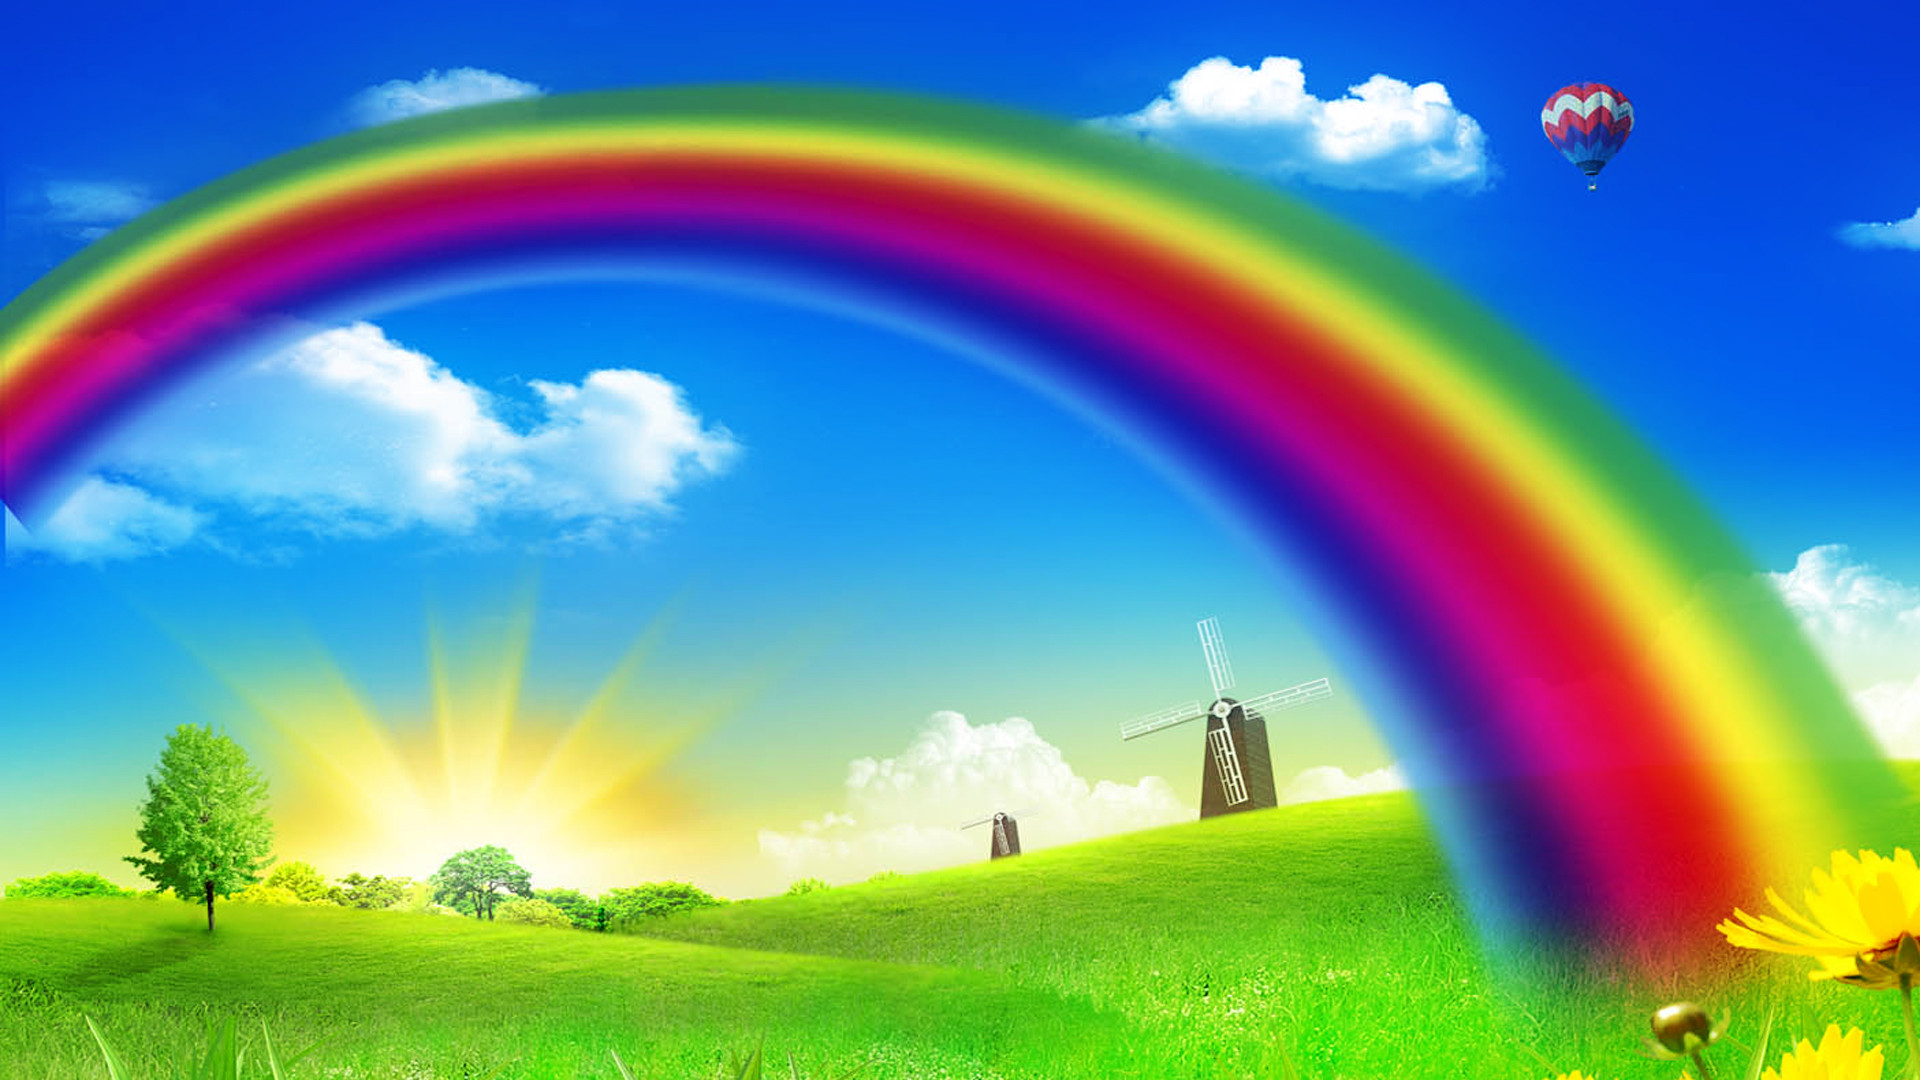 Rainbow Music Background Meaning Colorful Lines And Melody: Rainbow Color Wallpaper (71+ Images